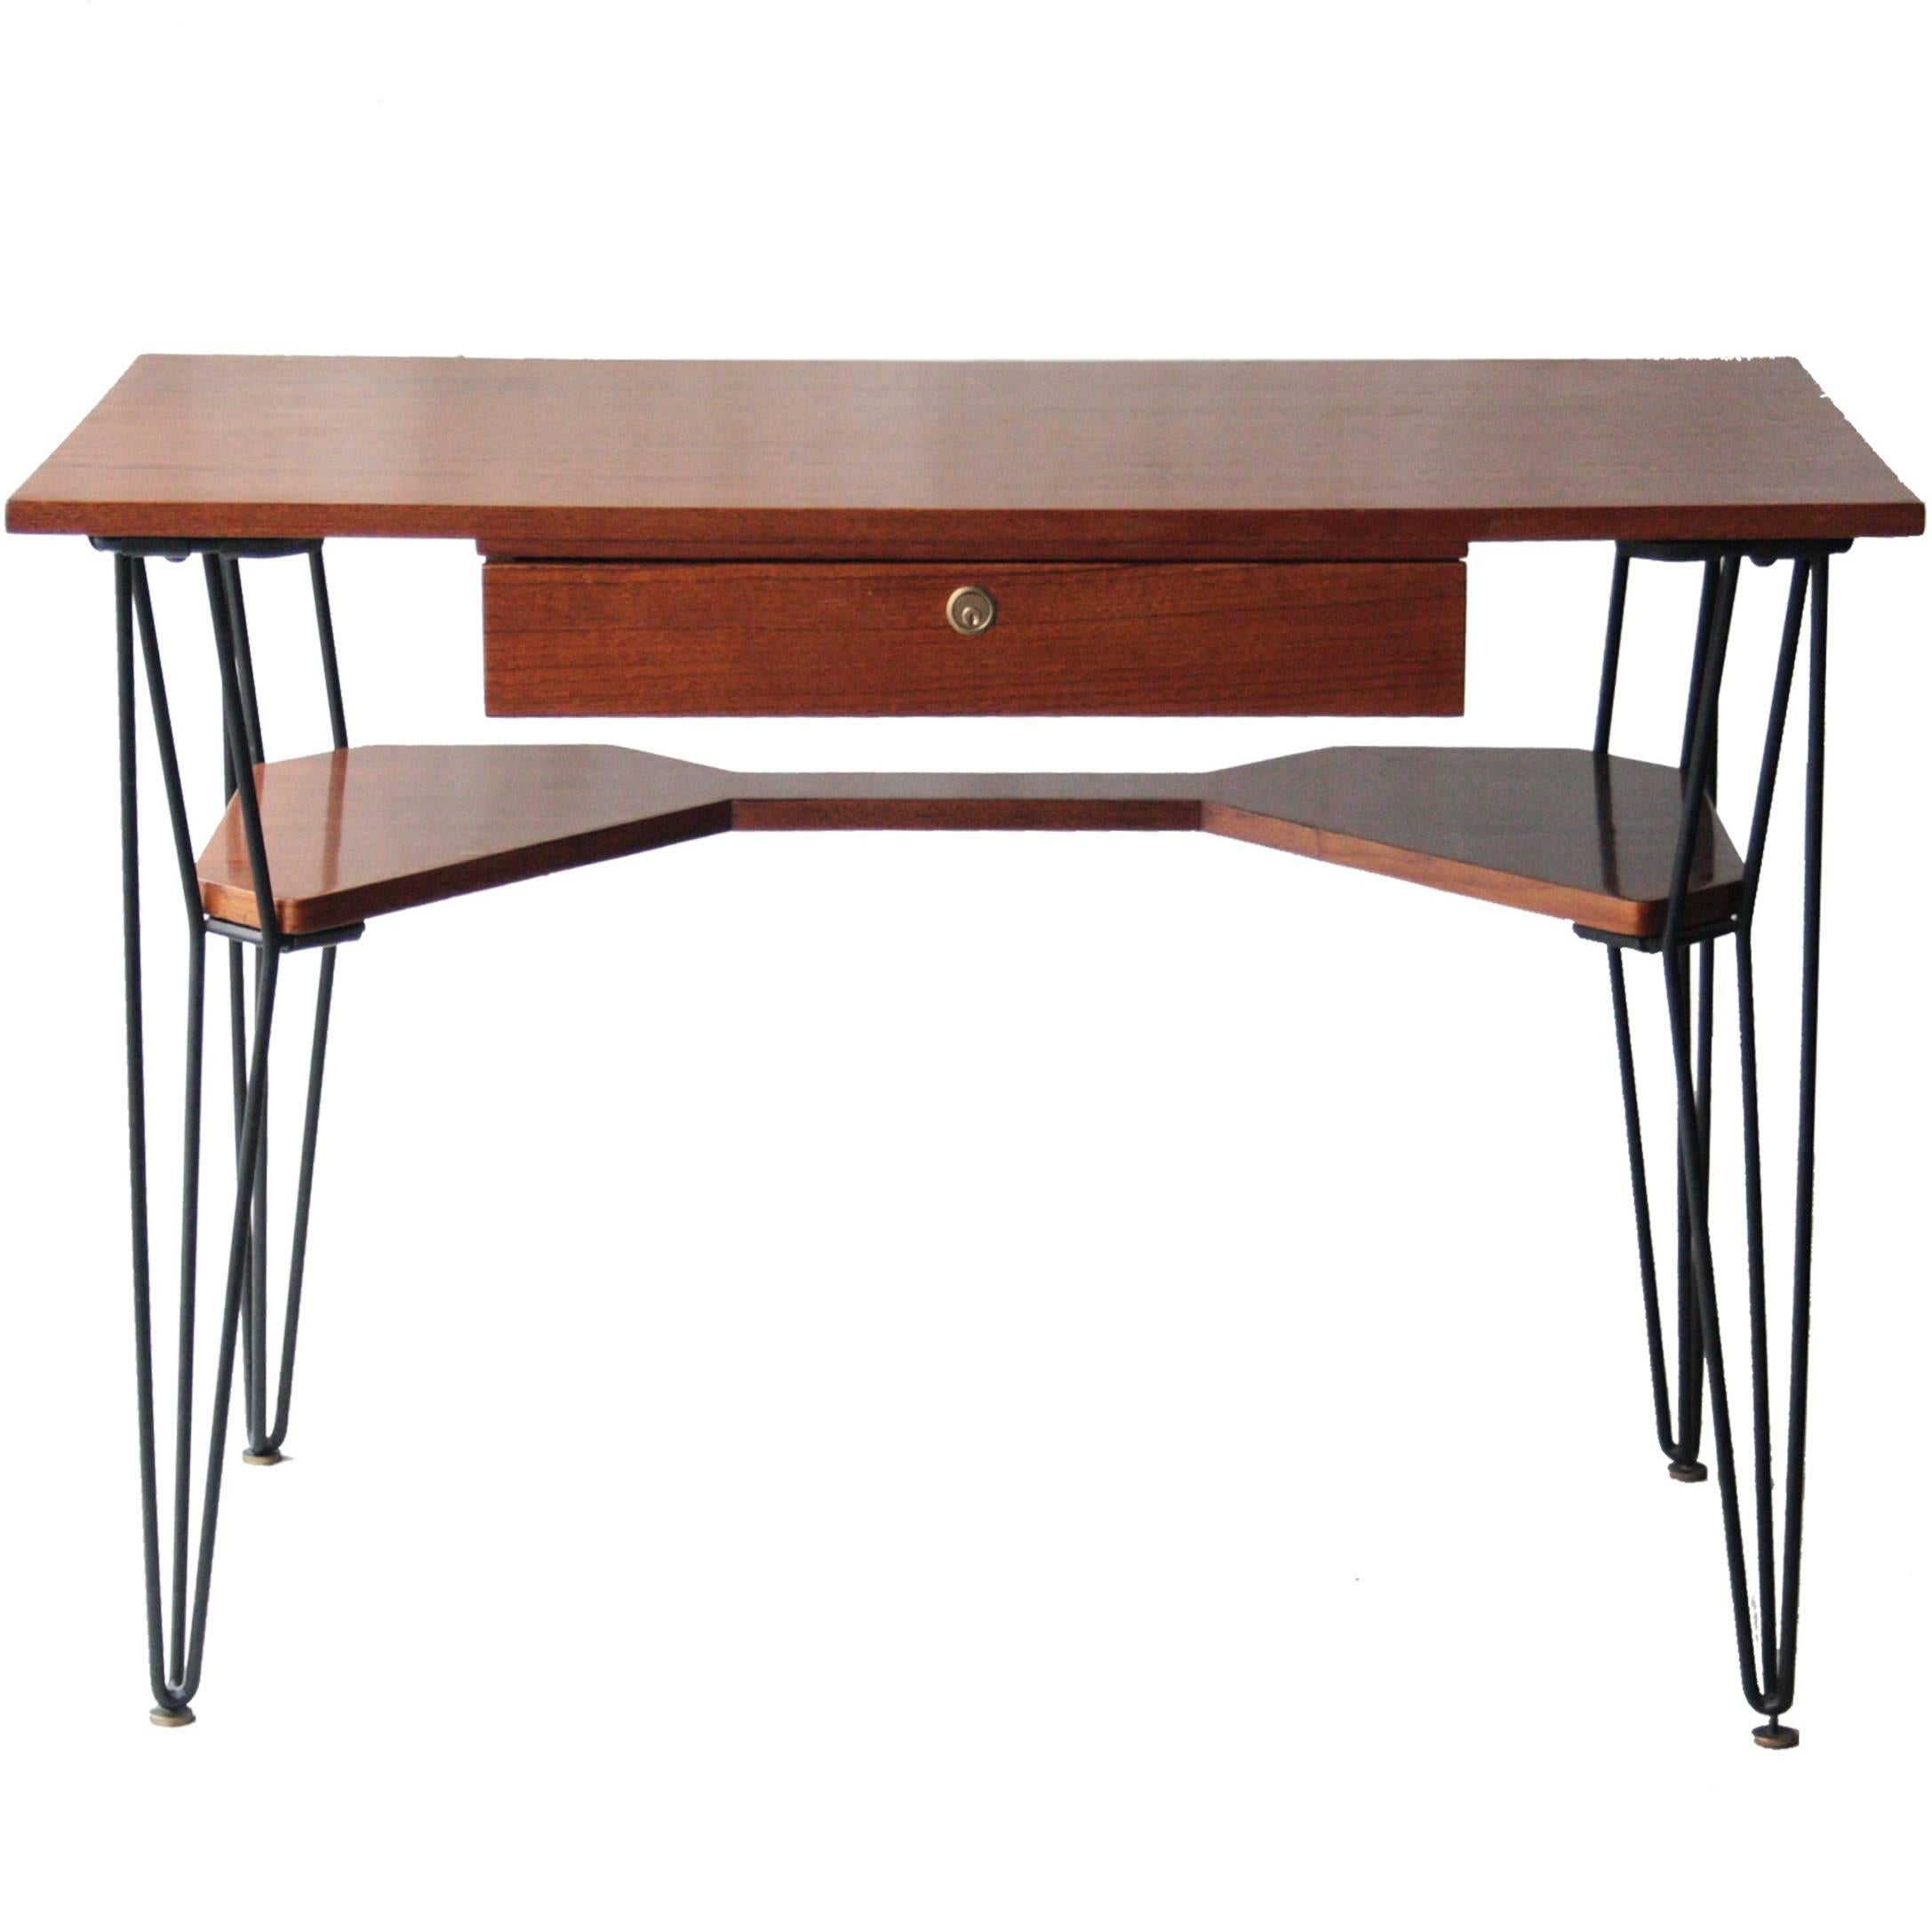 Childs Desk Attributed To Gio Ponti Original Condition, Italy, Circa